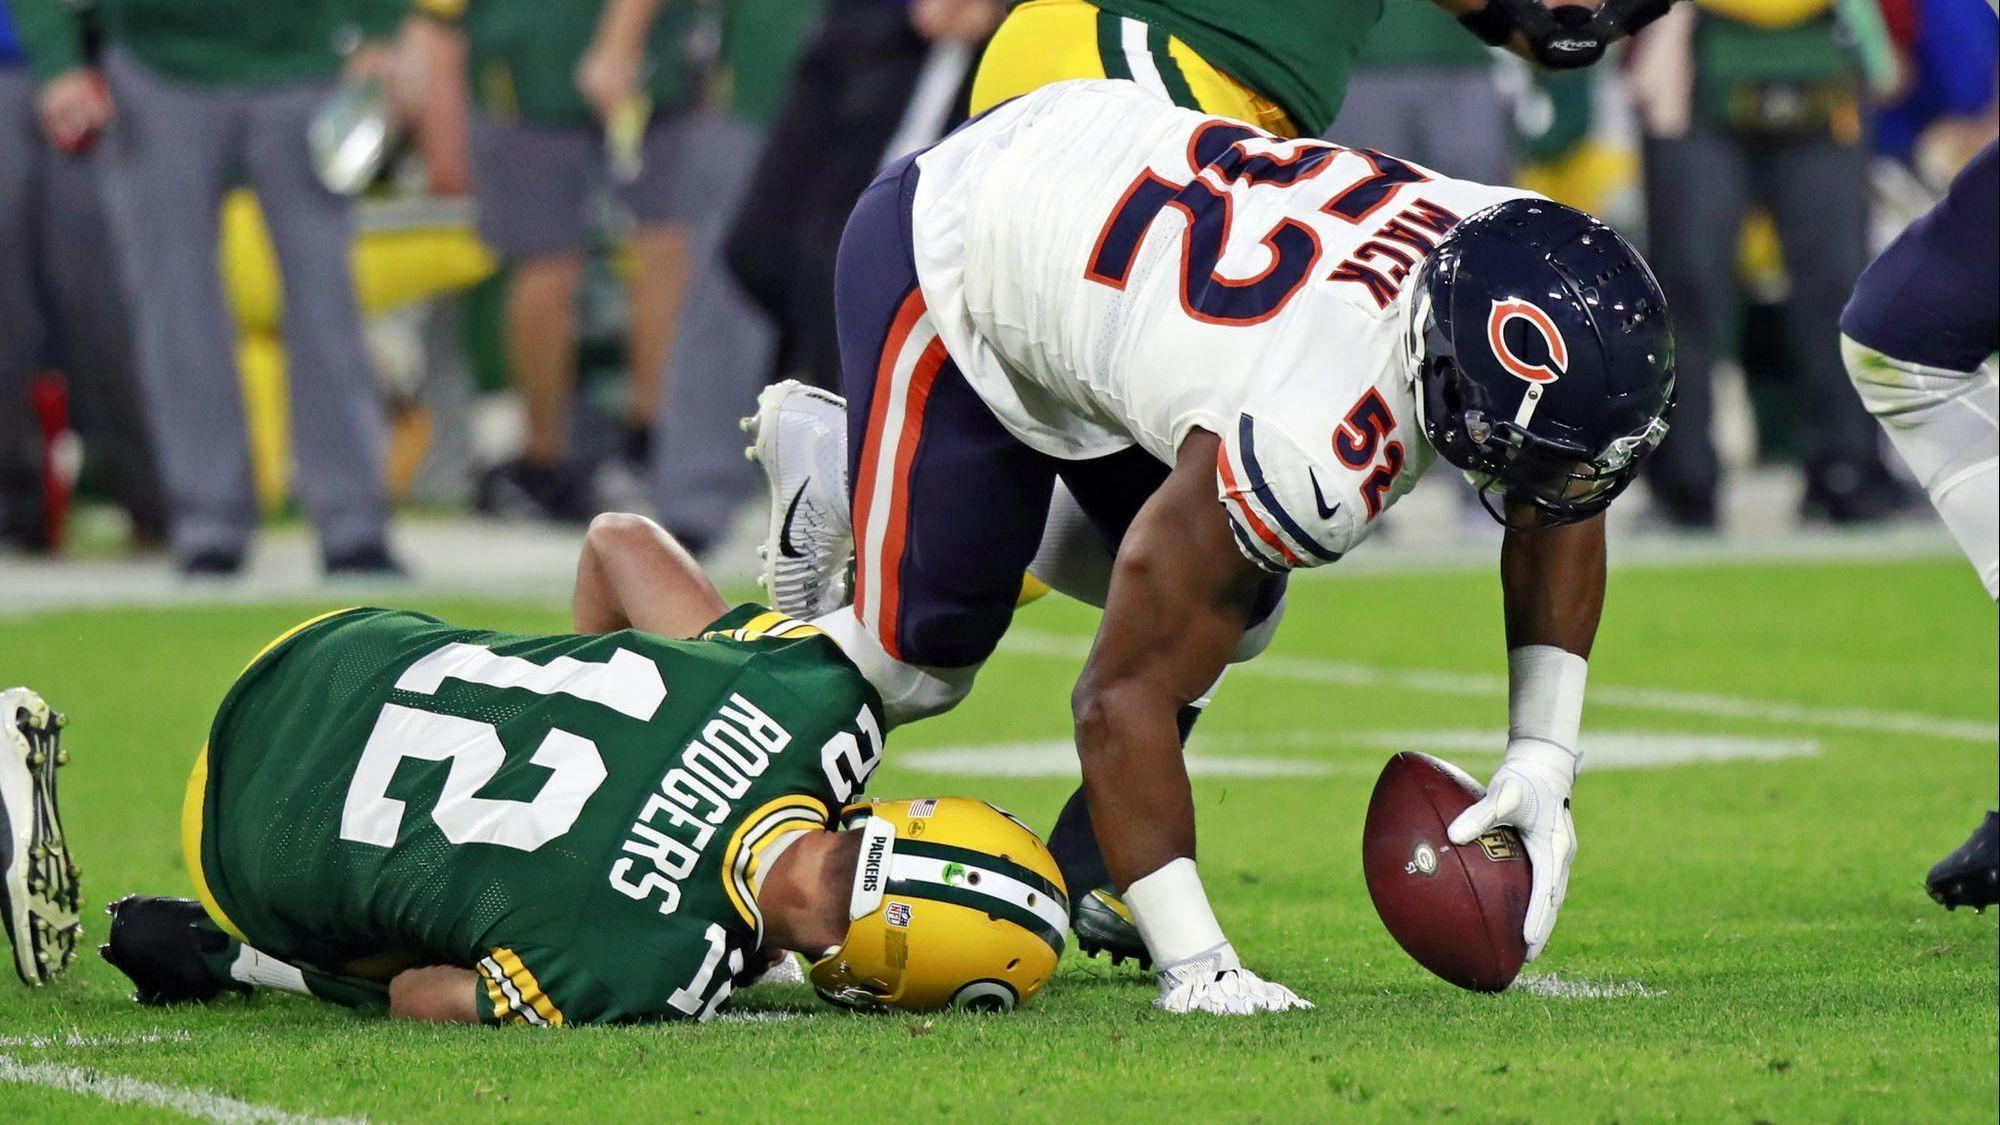 c523d319327 Bears let 20-0 lead evaporate in Green Bay, fall to Packers 24-23 ...